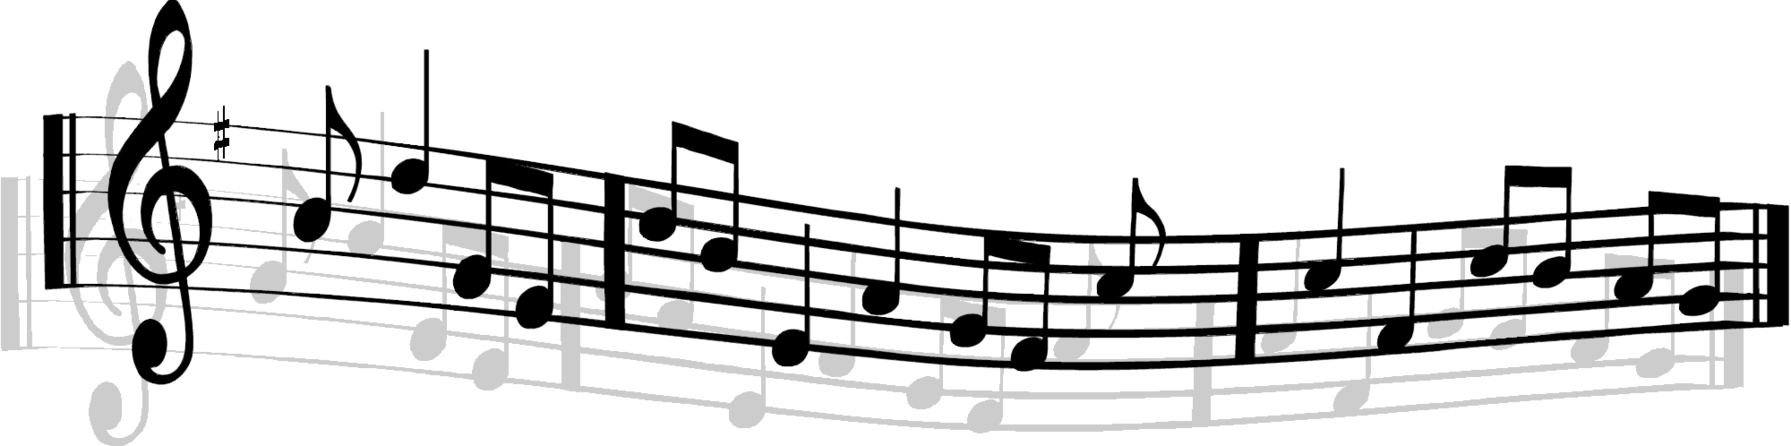 1791x446 Music Notes Images Free Clip Art Many Interesting Cliparts